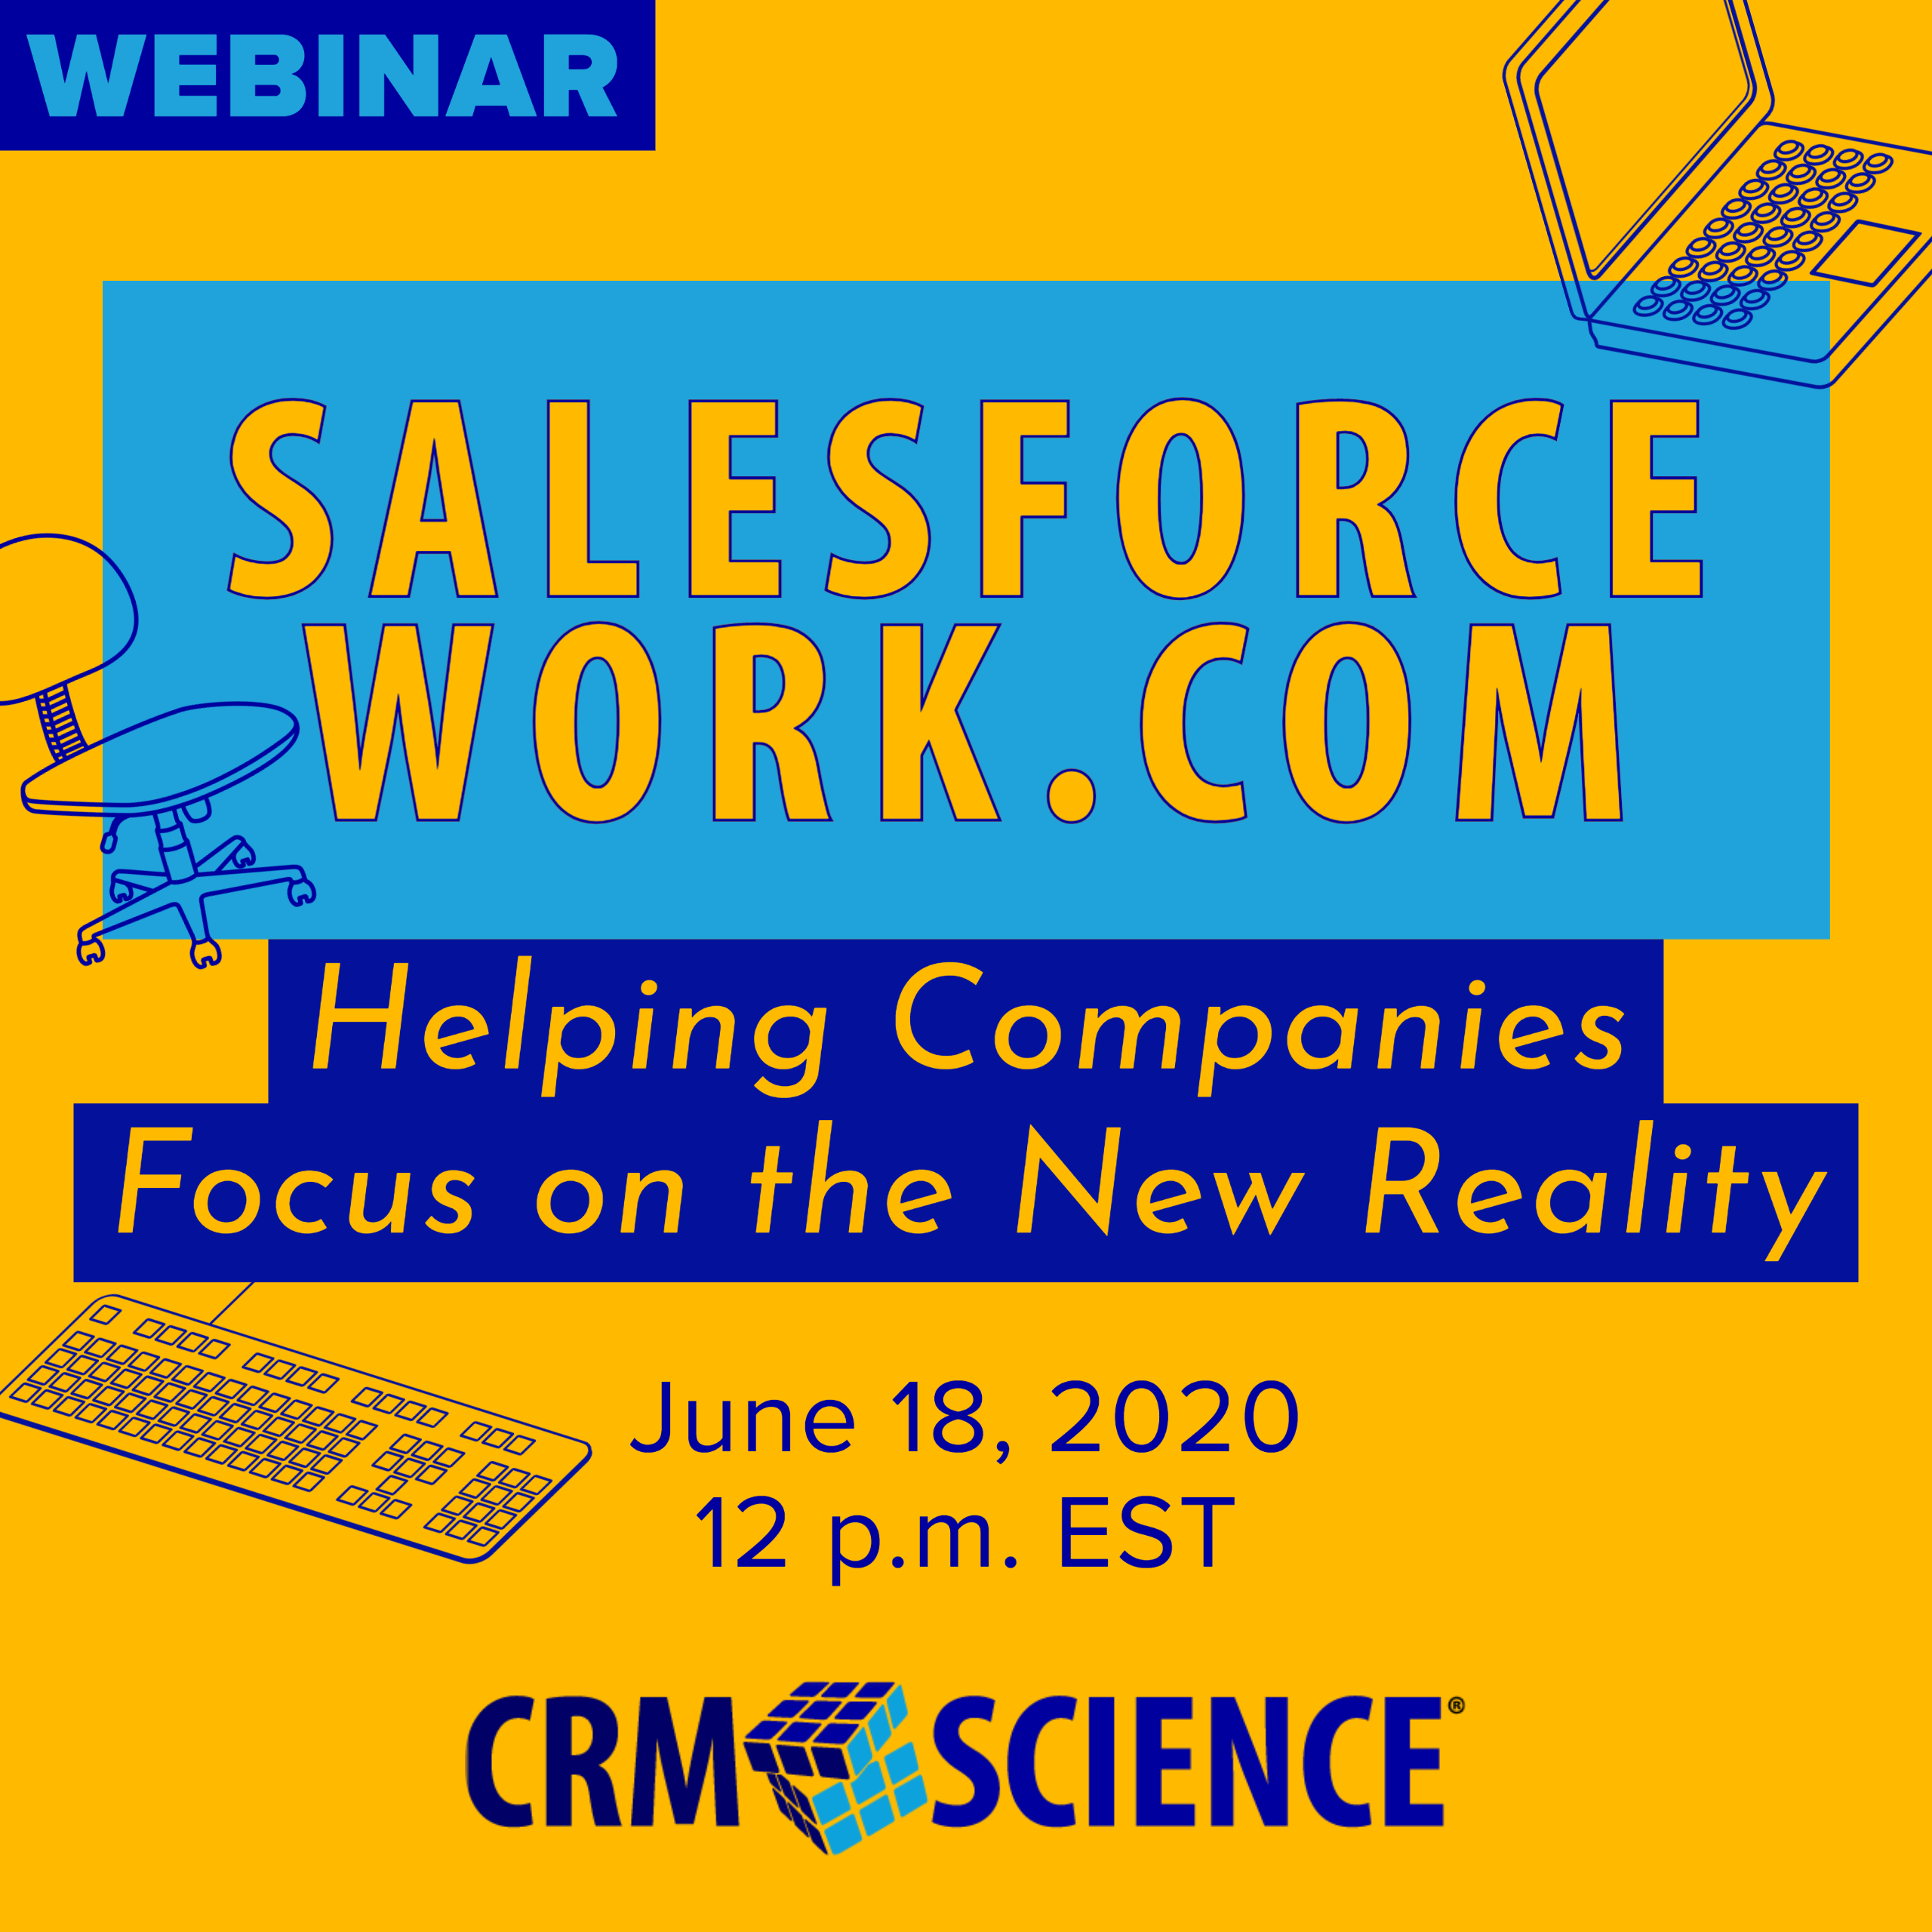 Webinar - Salesforce Work.com: Helping Companies Focus on the New Reality